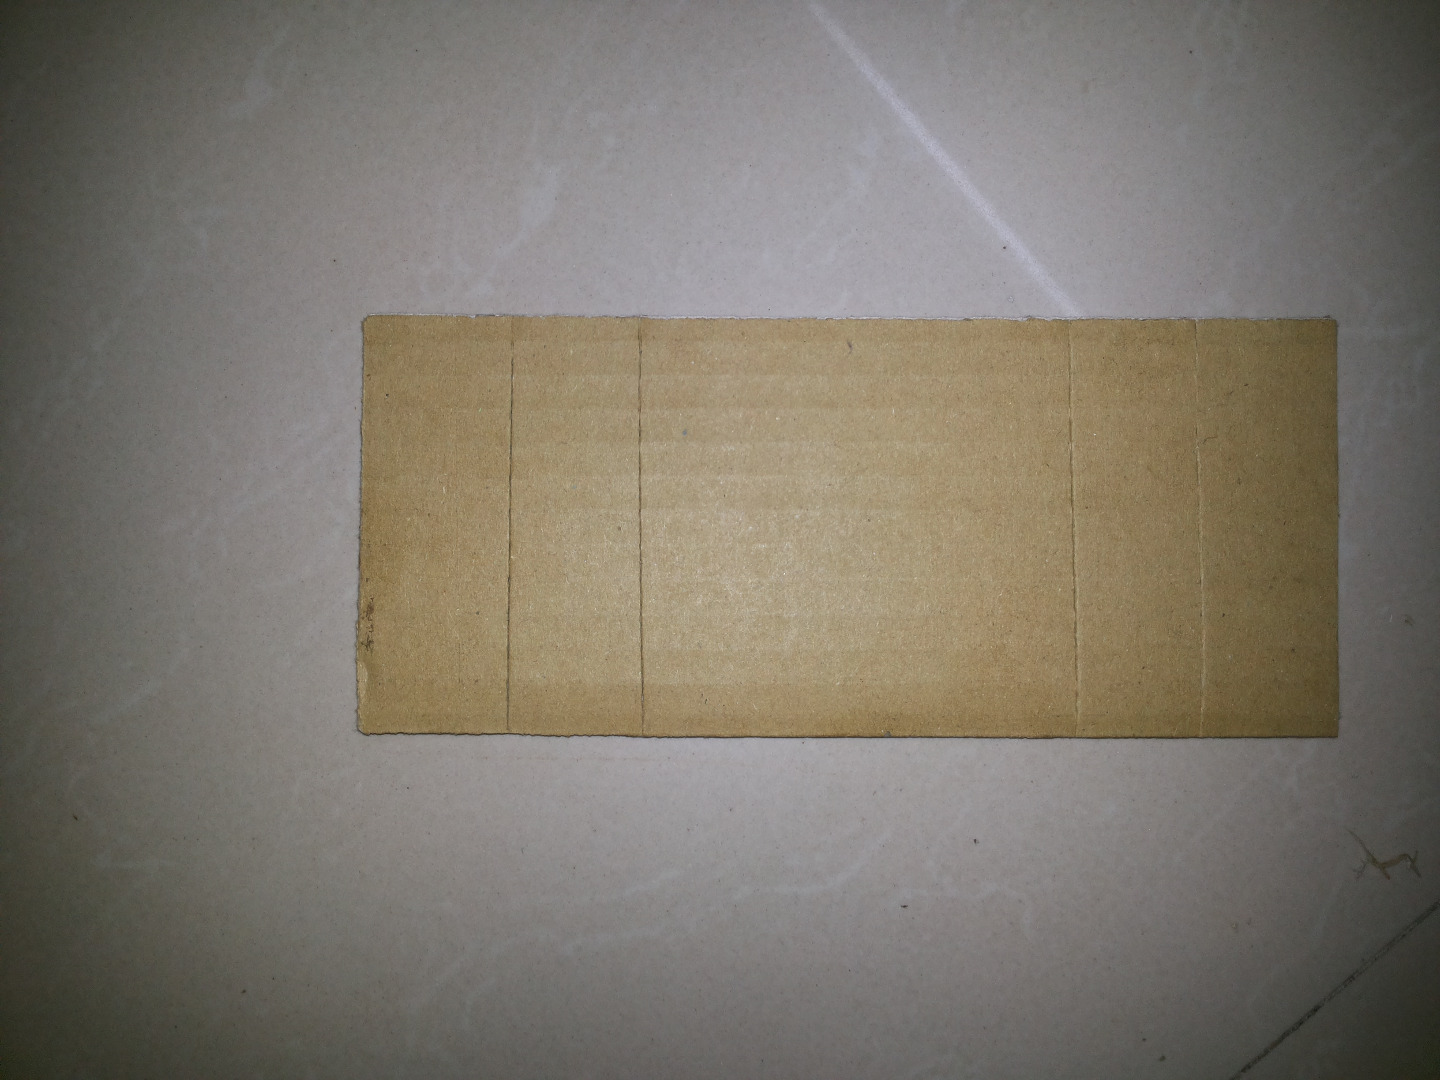 Picture of Cut a Cardboard Plate As Mentioned in the Layout